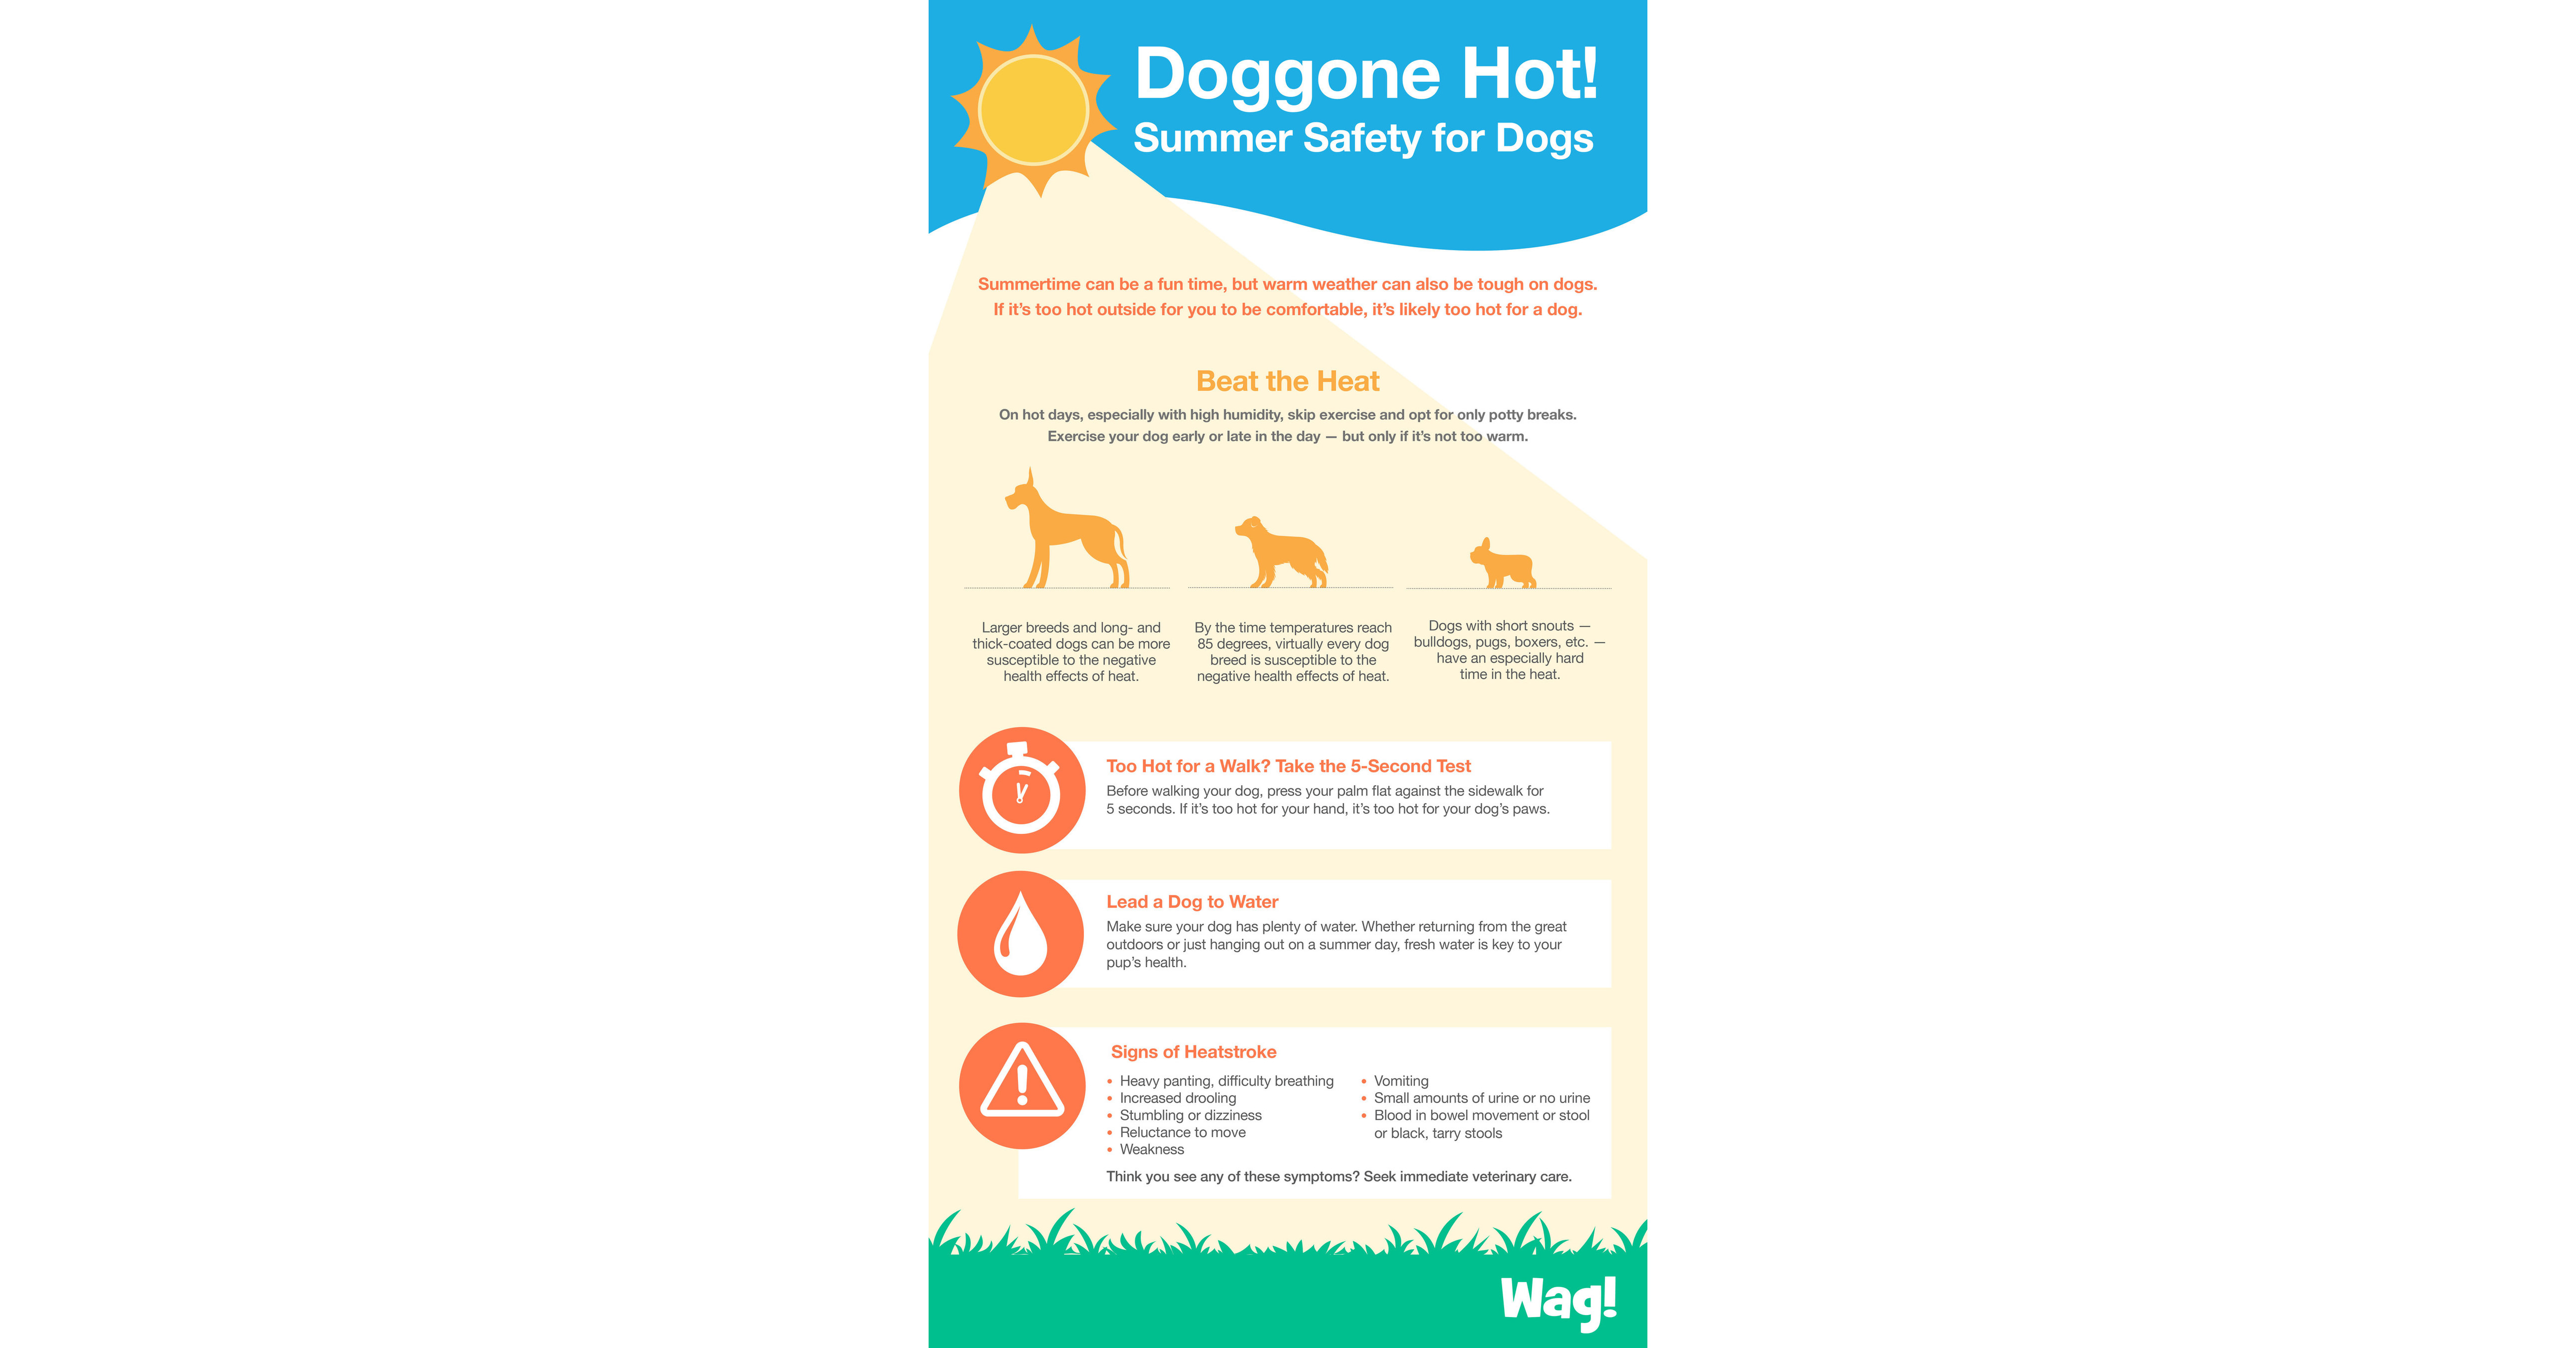 Wag Provides Safety Tips To Help Pet Parents Protect Their Dogs From The Dangers Of Hot Temperatures